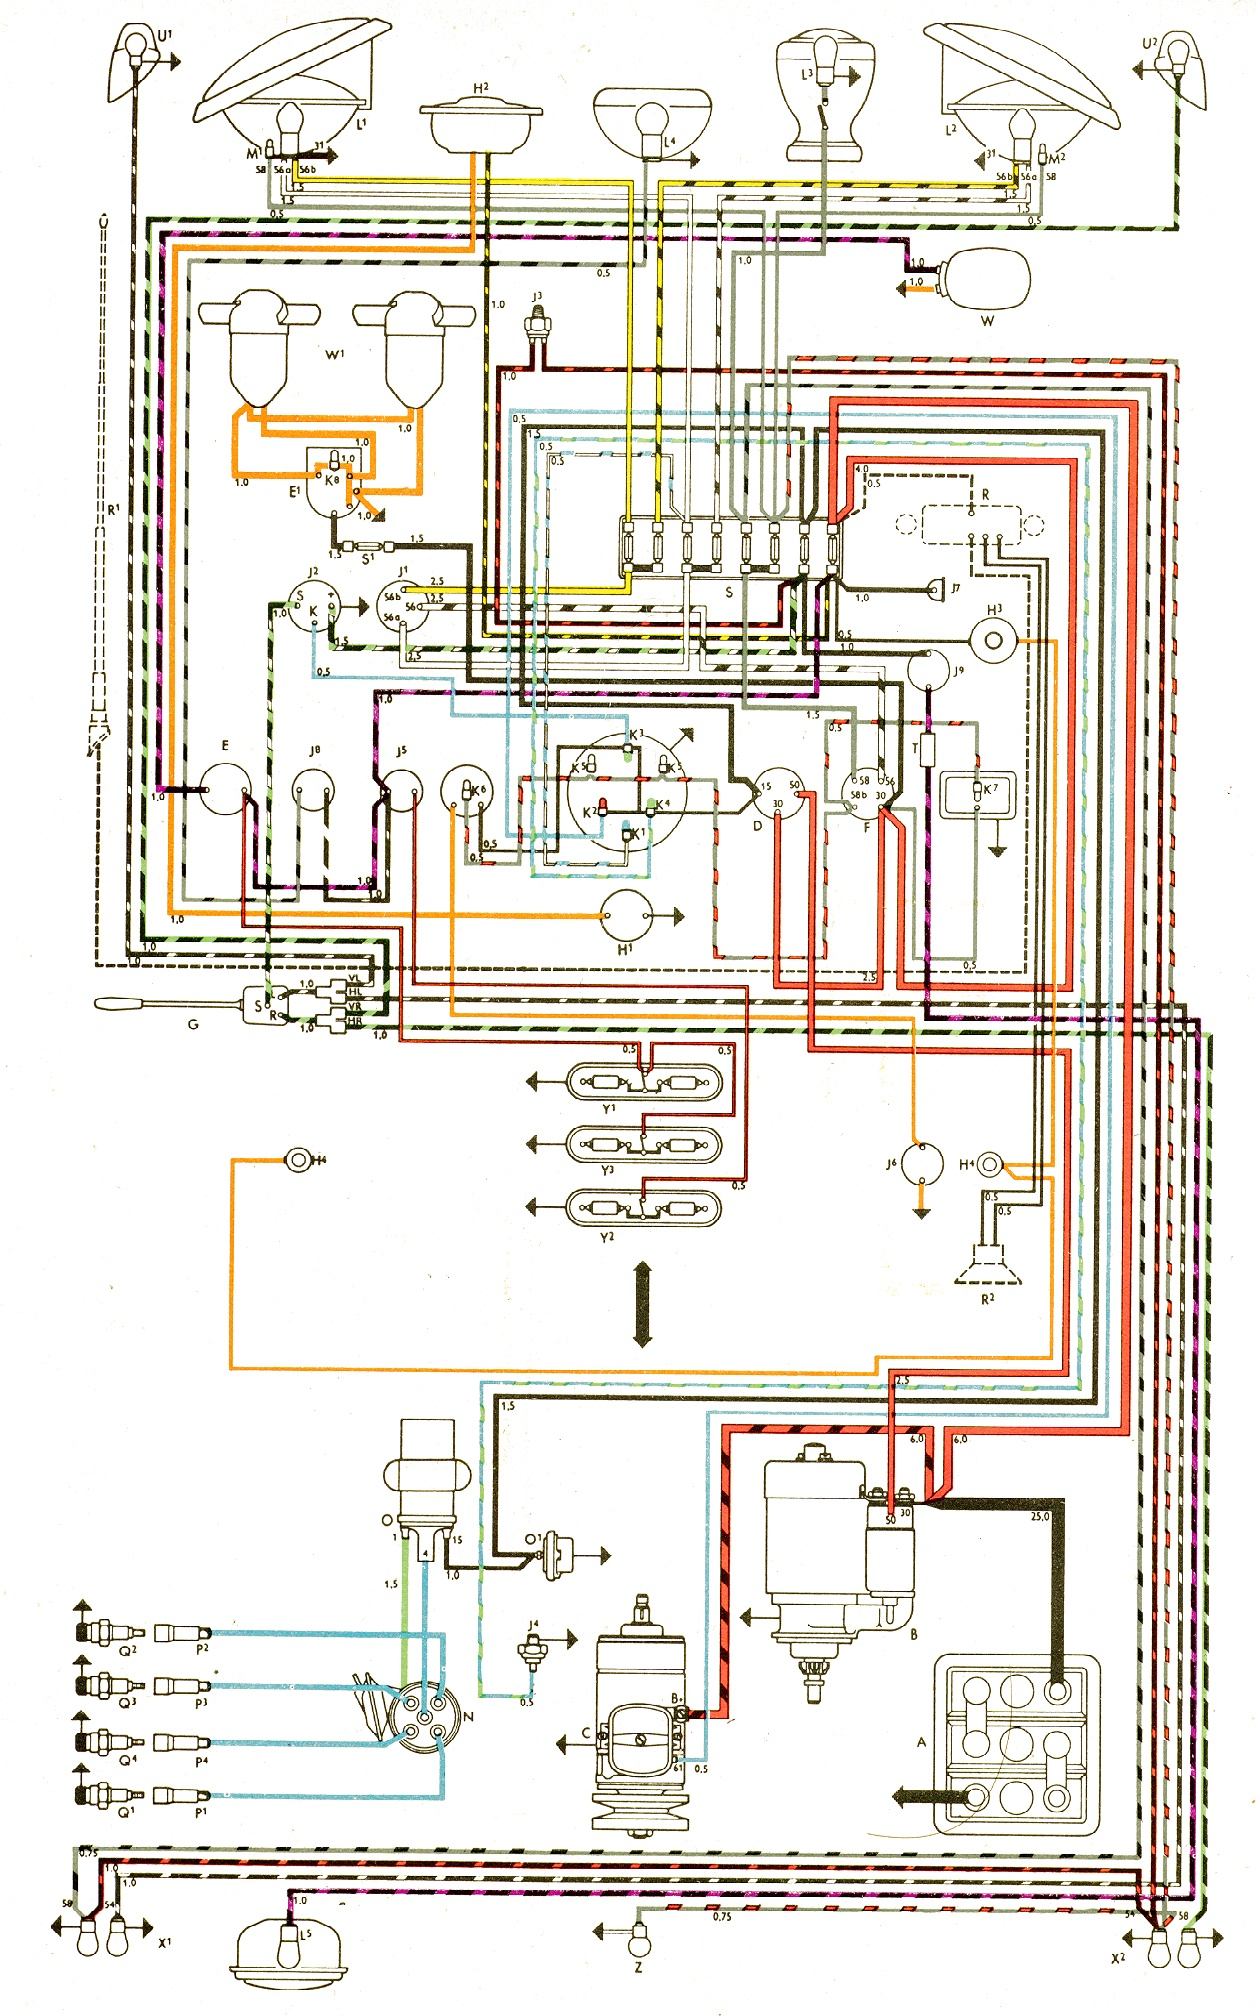 hight resolution of vintagebus com vw bus and other wiring diagrams engine diagram in addition van volkswagen vw bus moreover vw beetle